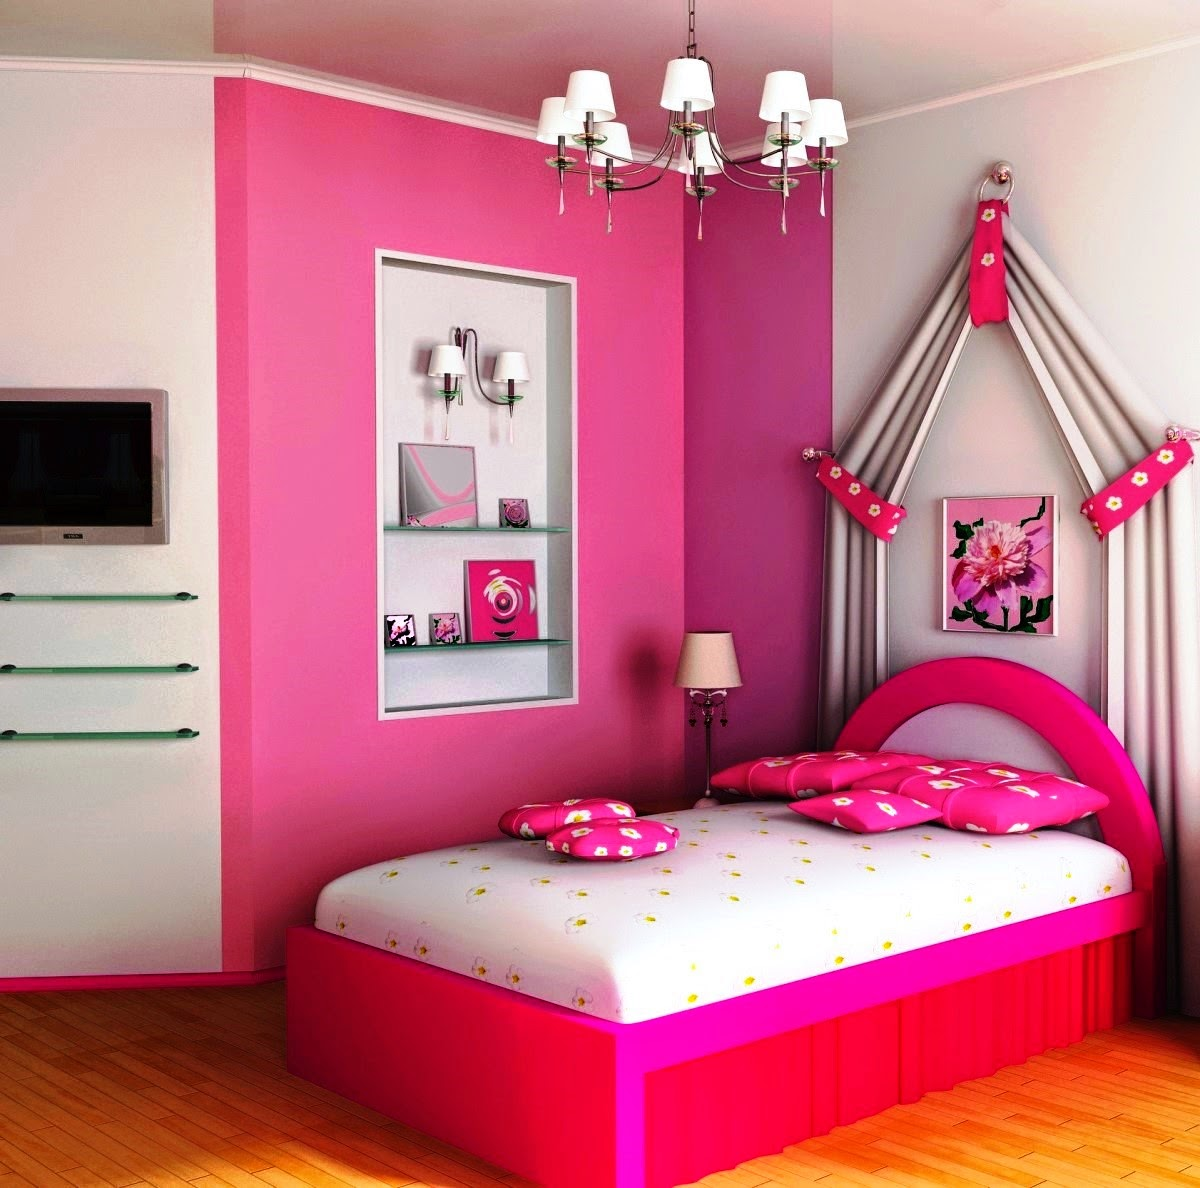 Pretty Room Decorations Pink Girls Bedroom Ideas Pretty: تاثیر رنگ اتاق خواب در کودکان